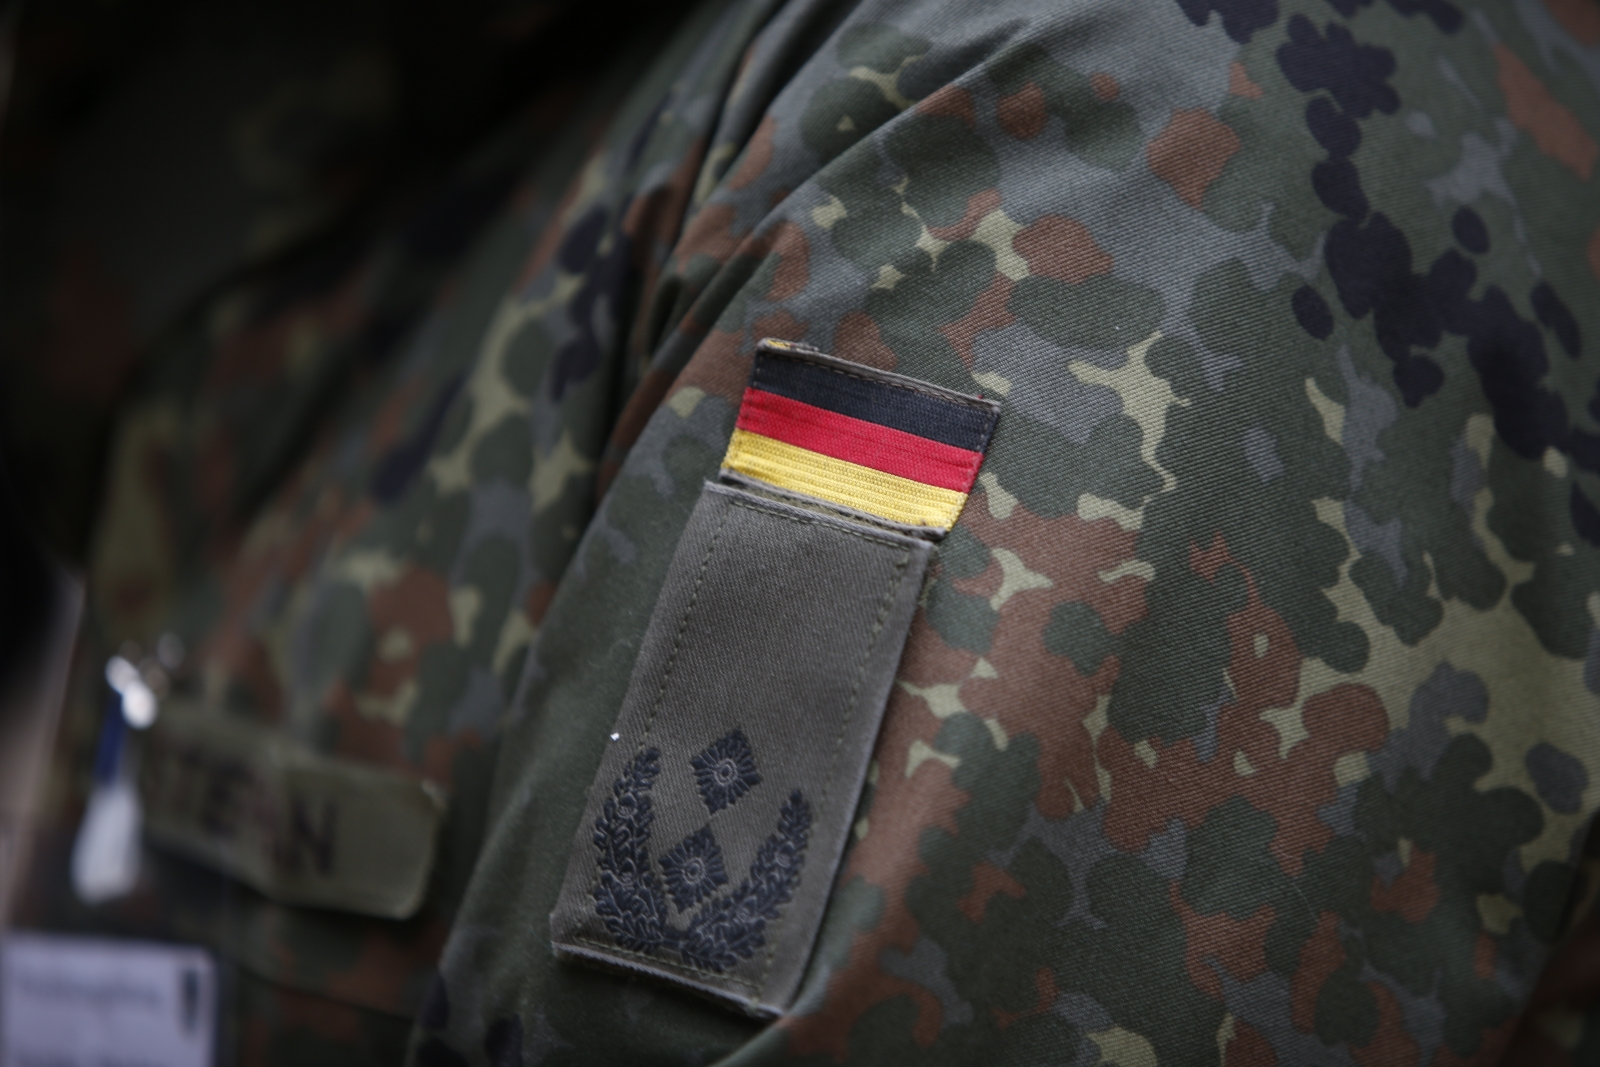 German army uniform